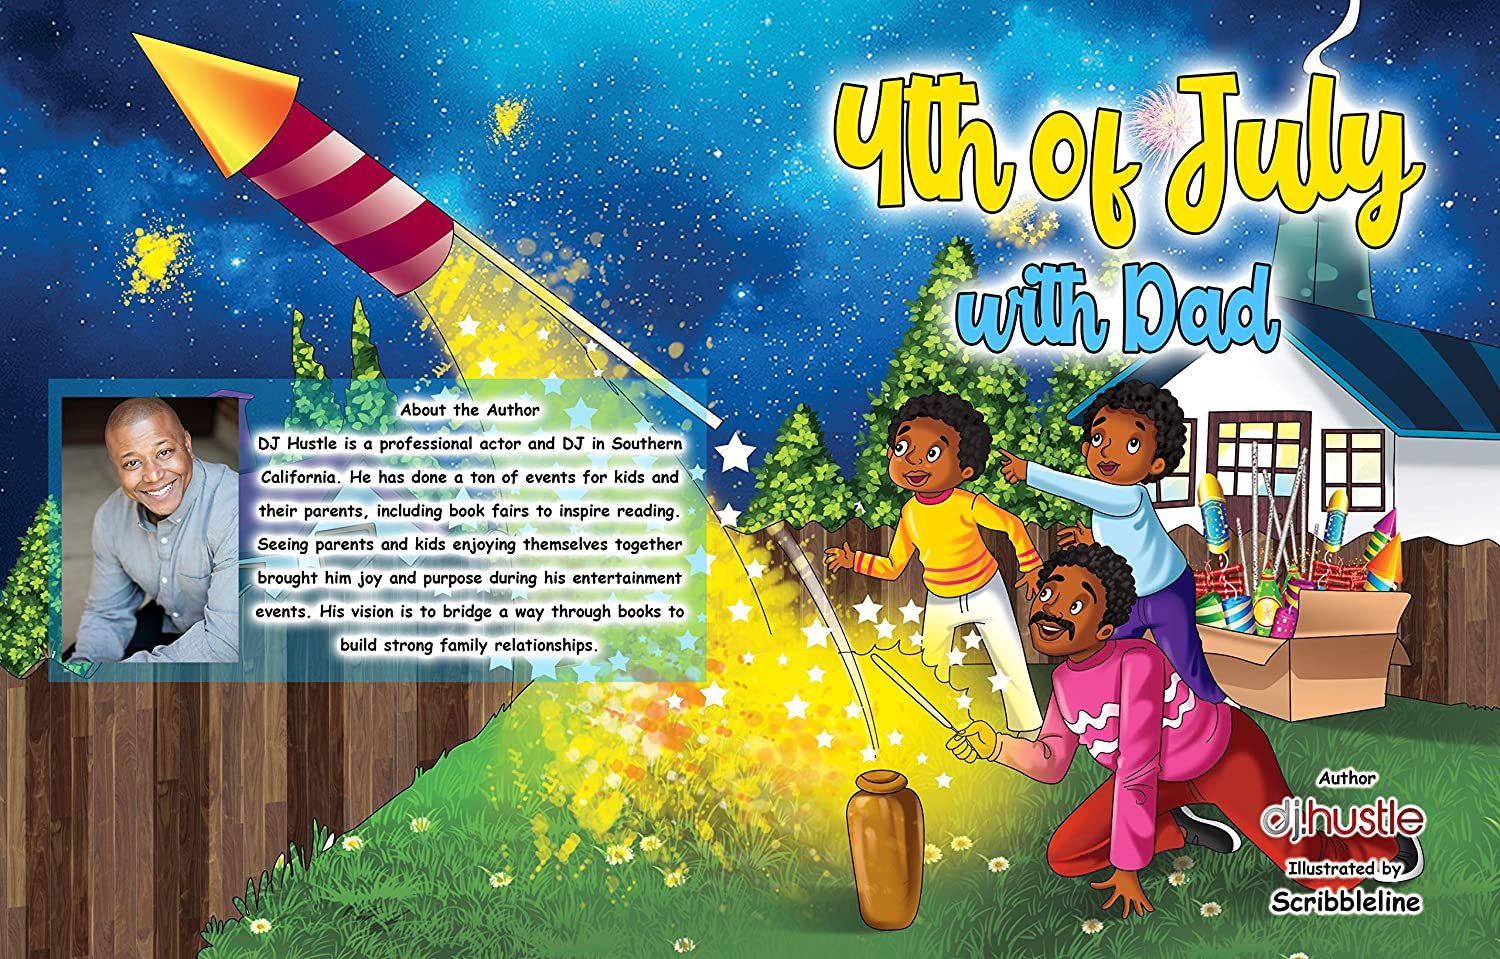 Children's book written by DJ Hustle